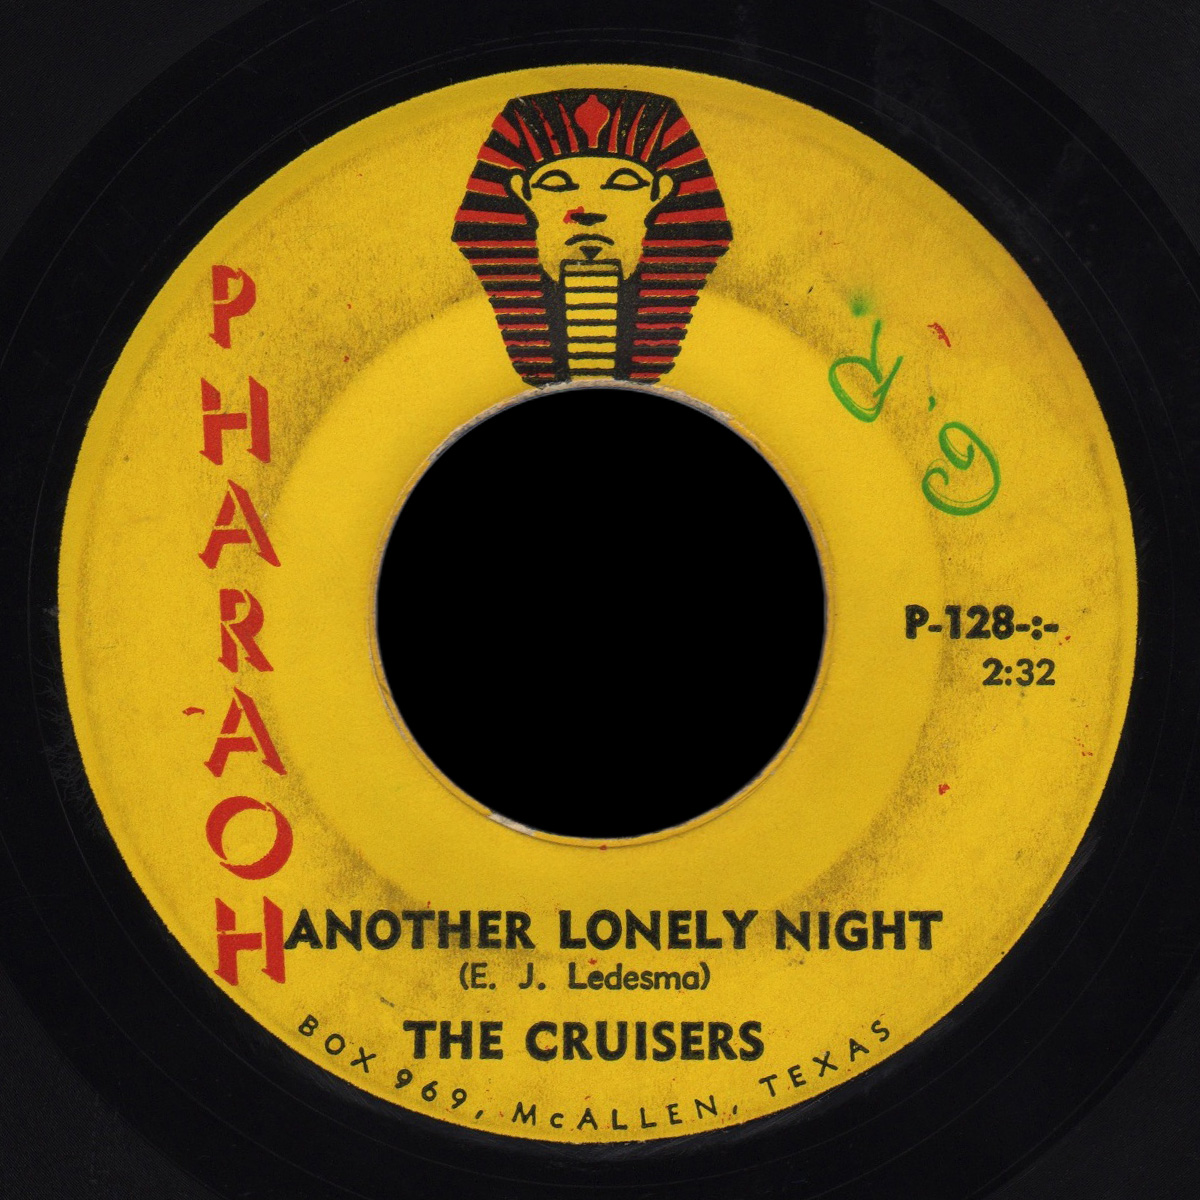 The Cruisers Pharaoh 45 Another Lonely Night